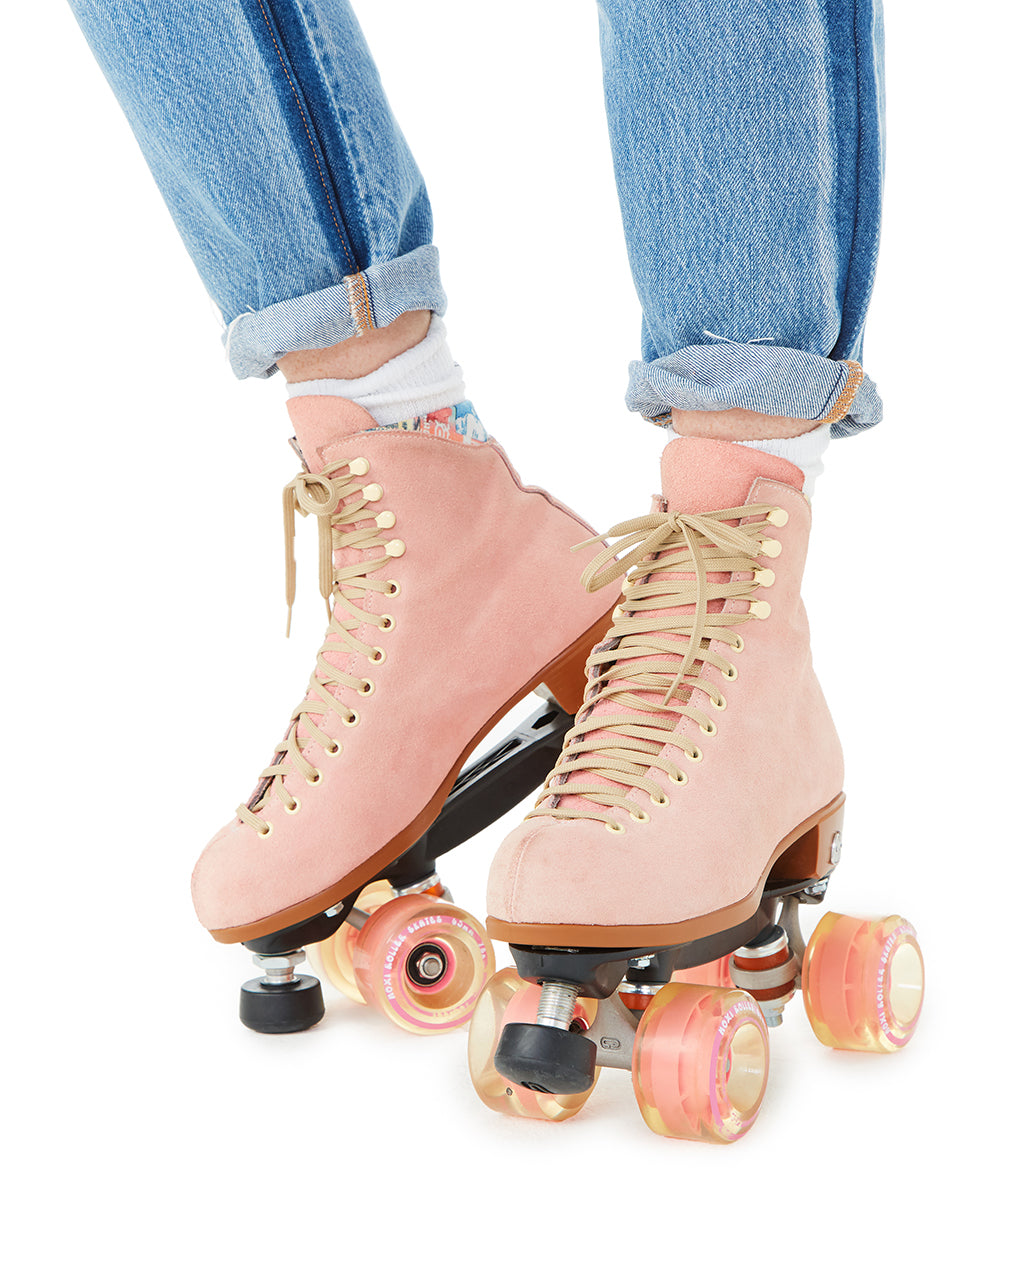 pink roller skates by moxi roller skates   shoes   ban do